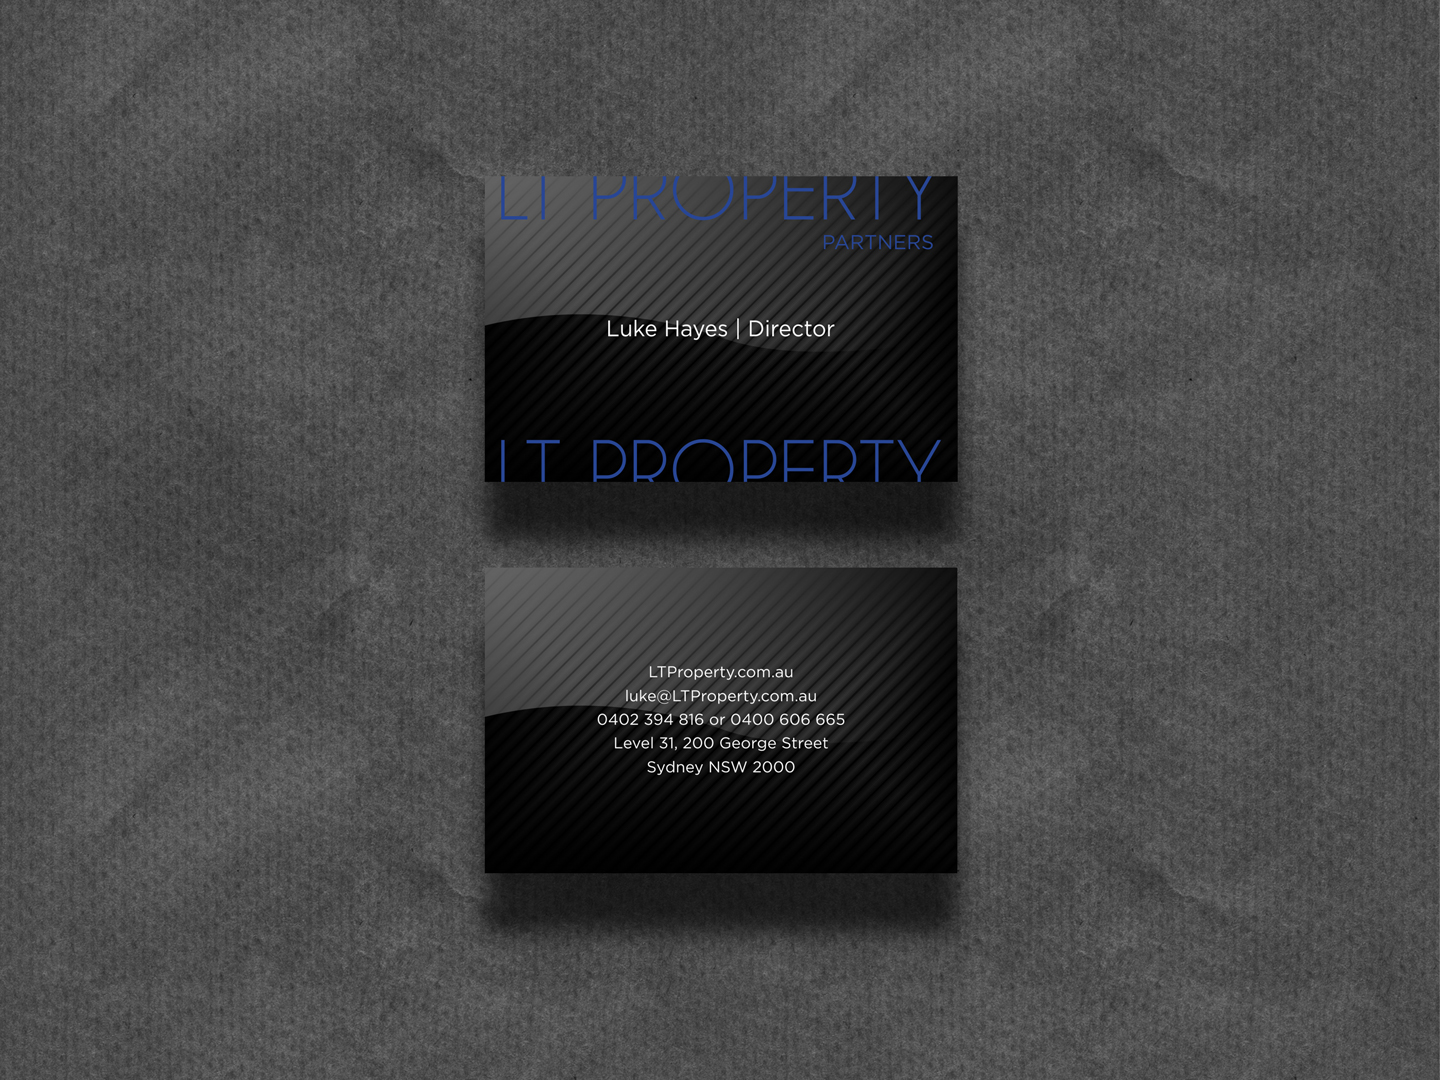 15 professional business card designs real estate agent business business card design by hypdesign for lt property design 19512393 reheart Image collections